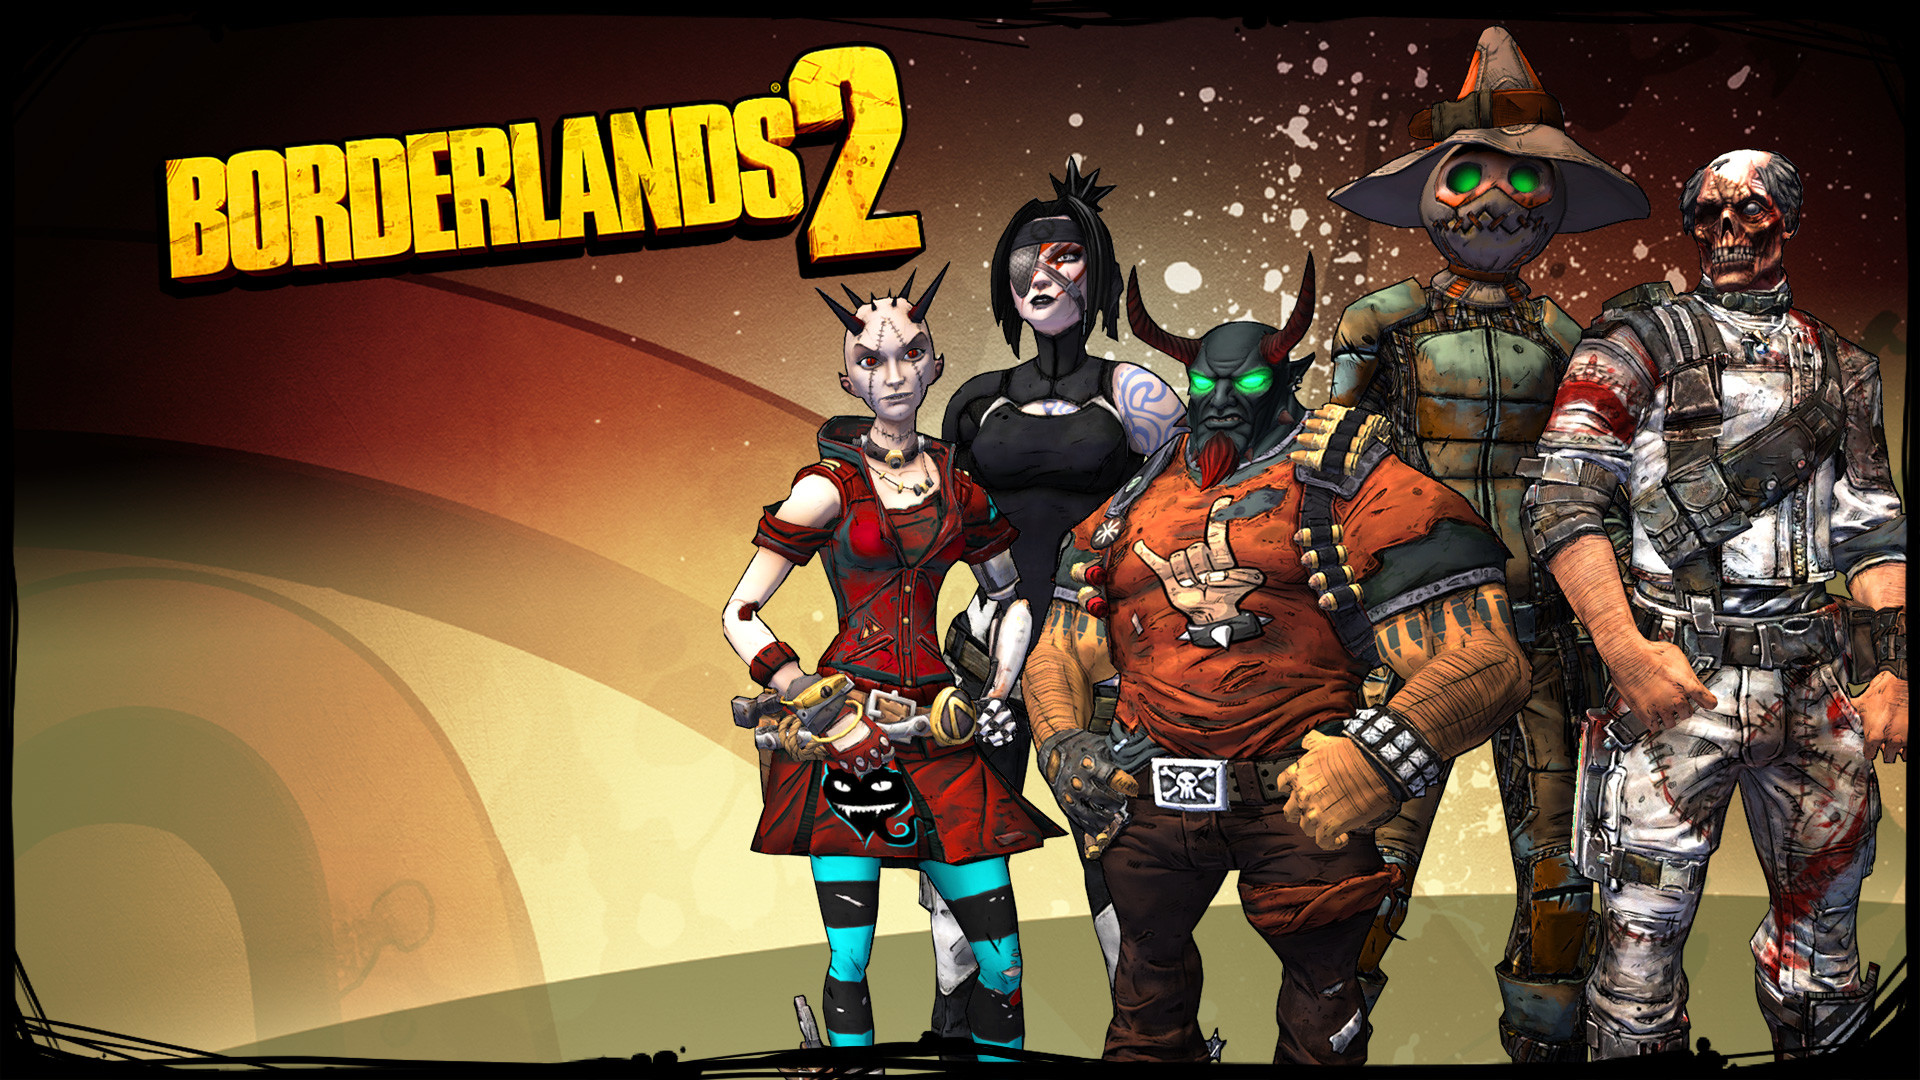 Borderlands 2 Class Wallpaper: Borderlands 2 Psycho Wallpaper (77+ Images